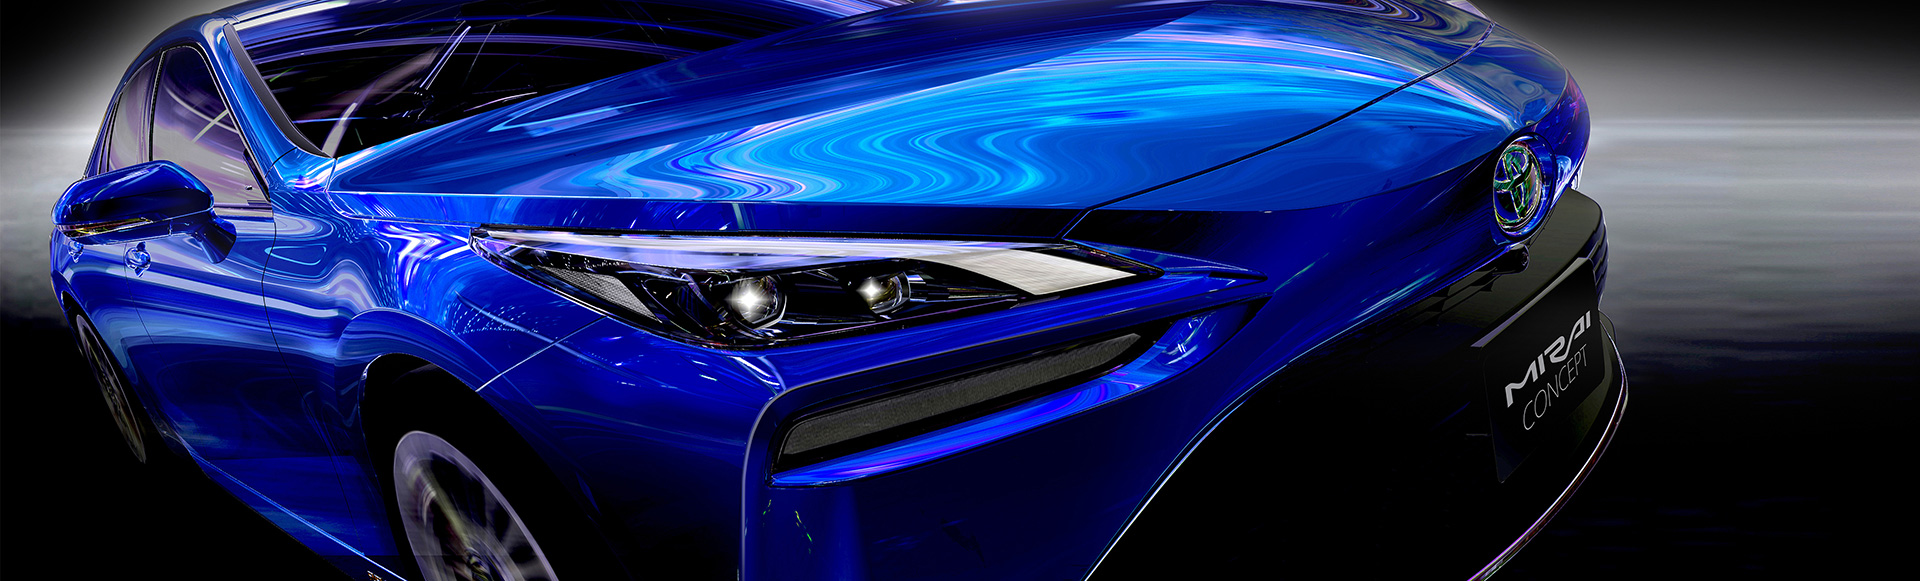 Toyota to Unveil Next-Generation Mirai Concept at 2019 Tokyo Motor Show's Future Expo